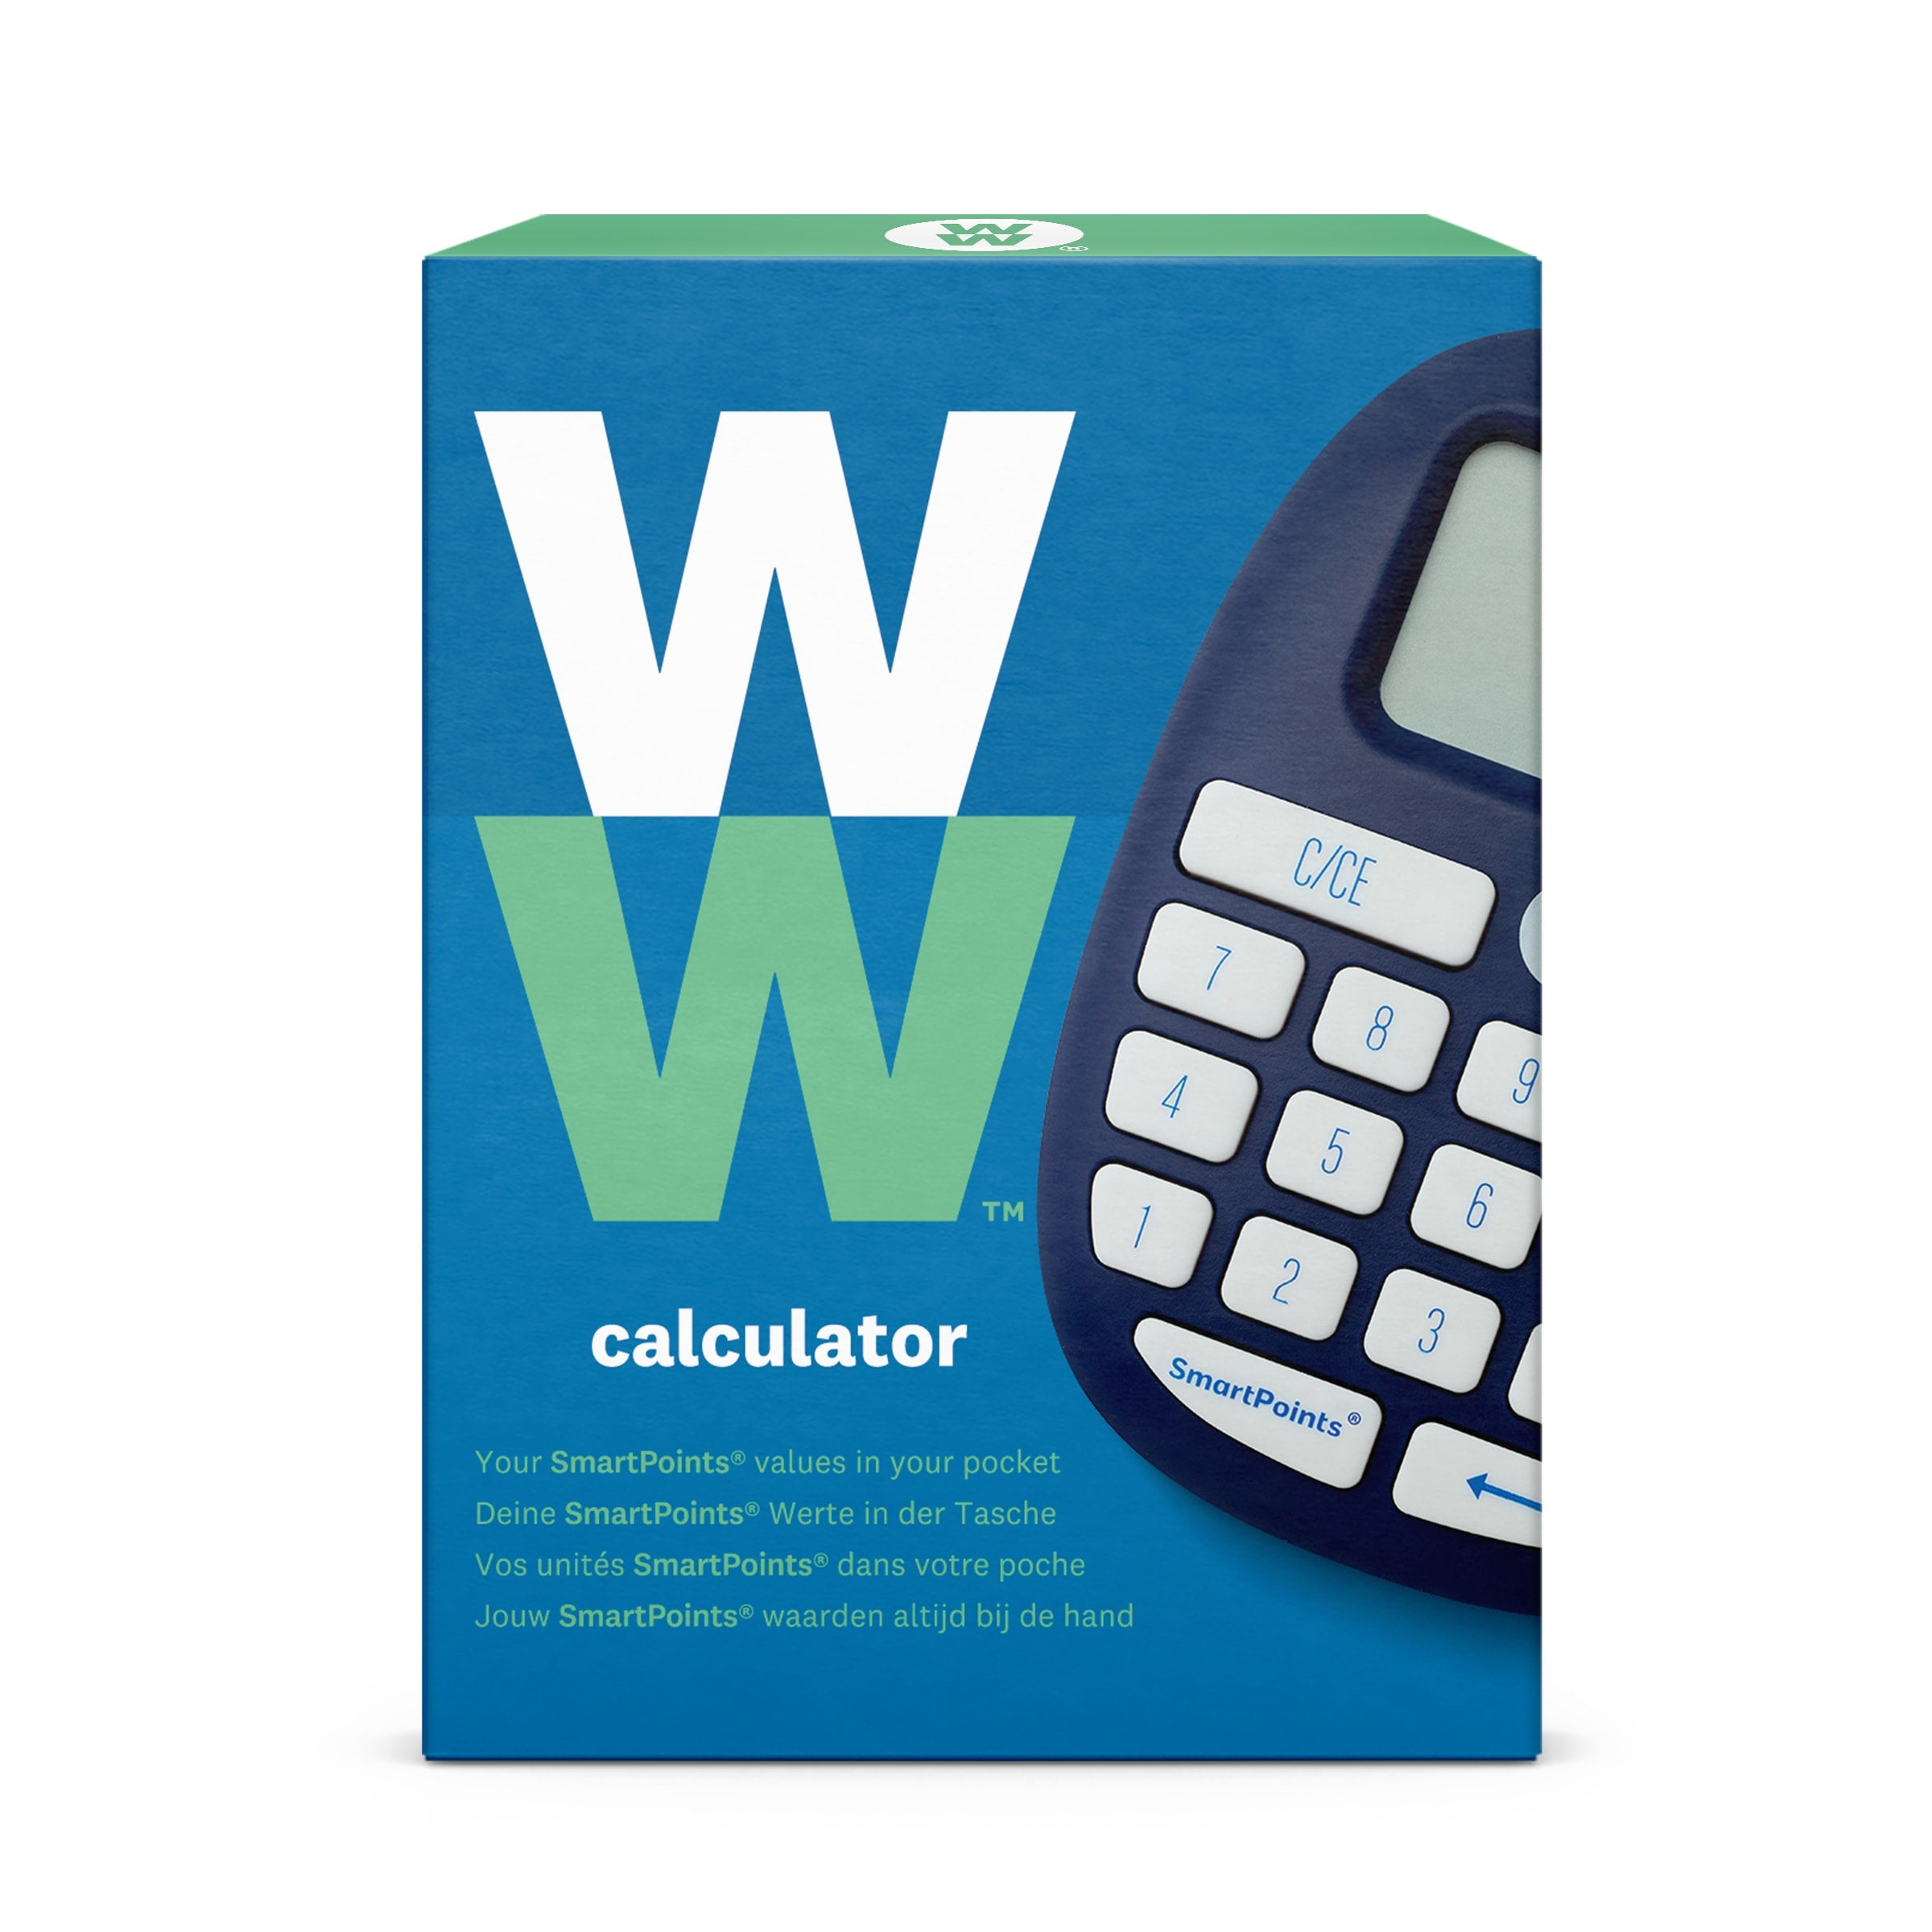 Calculateur de Smartpoints ww